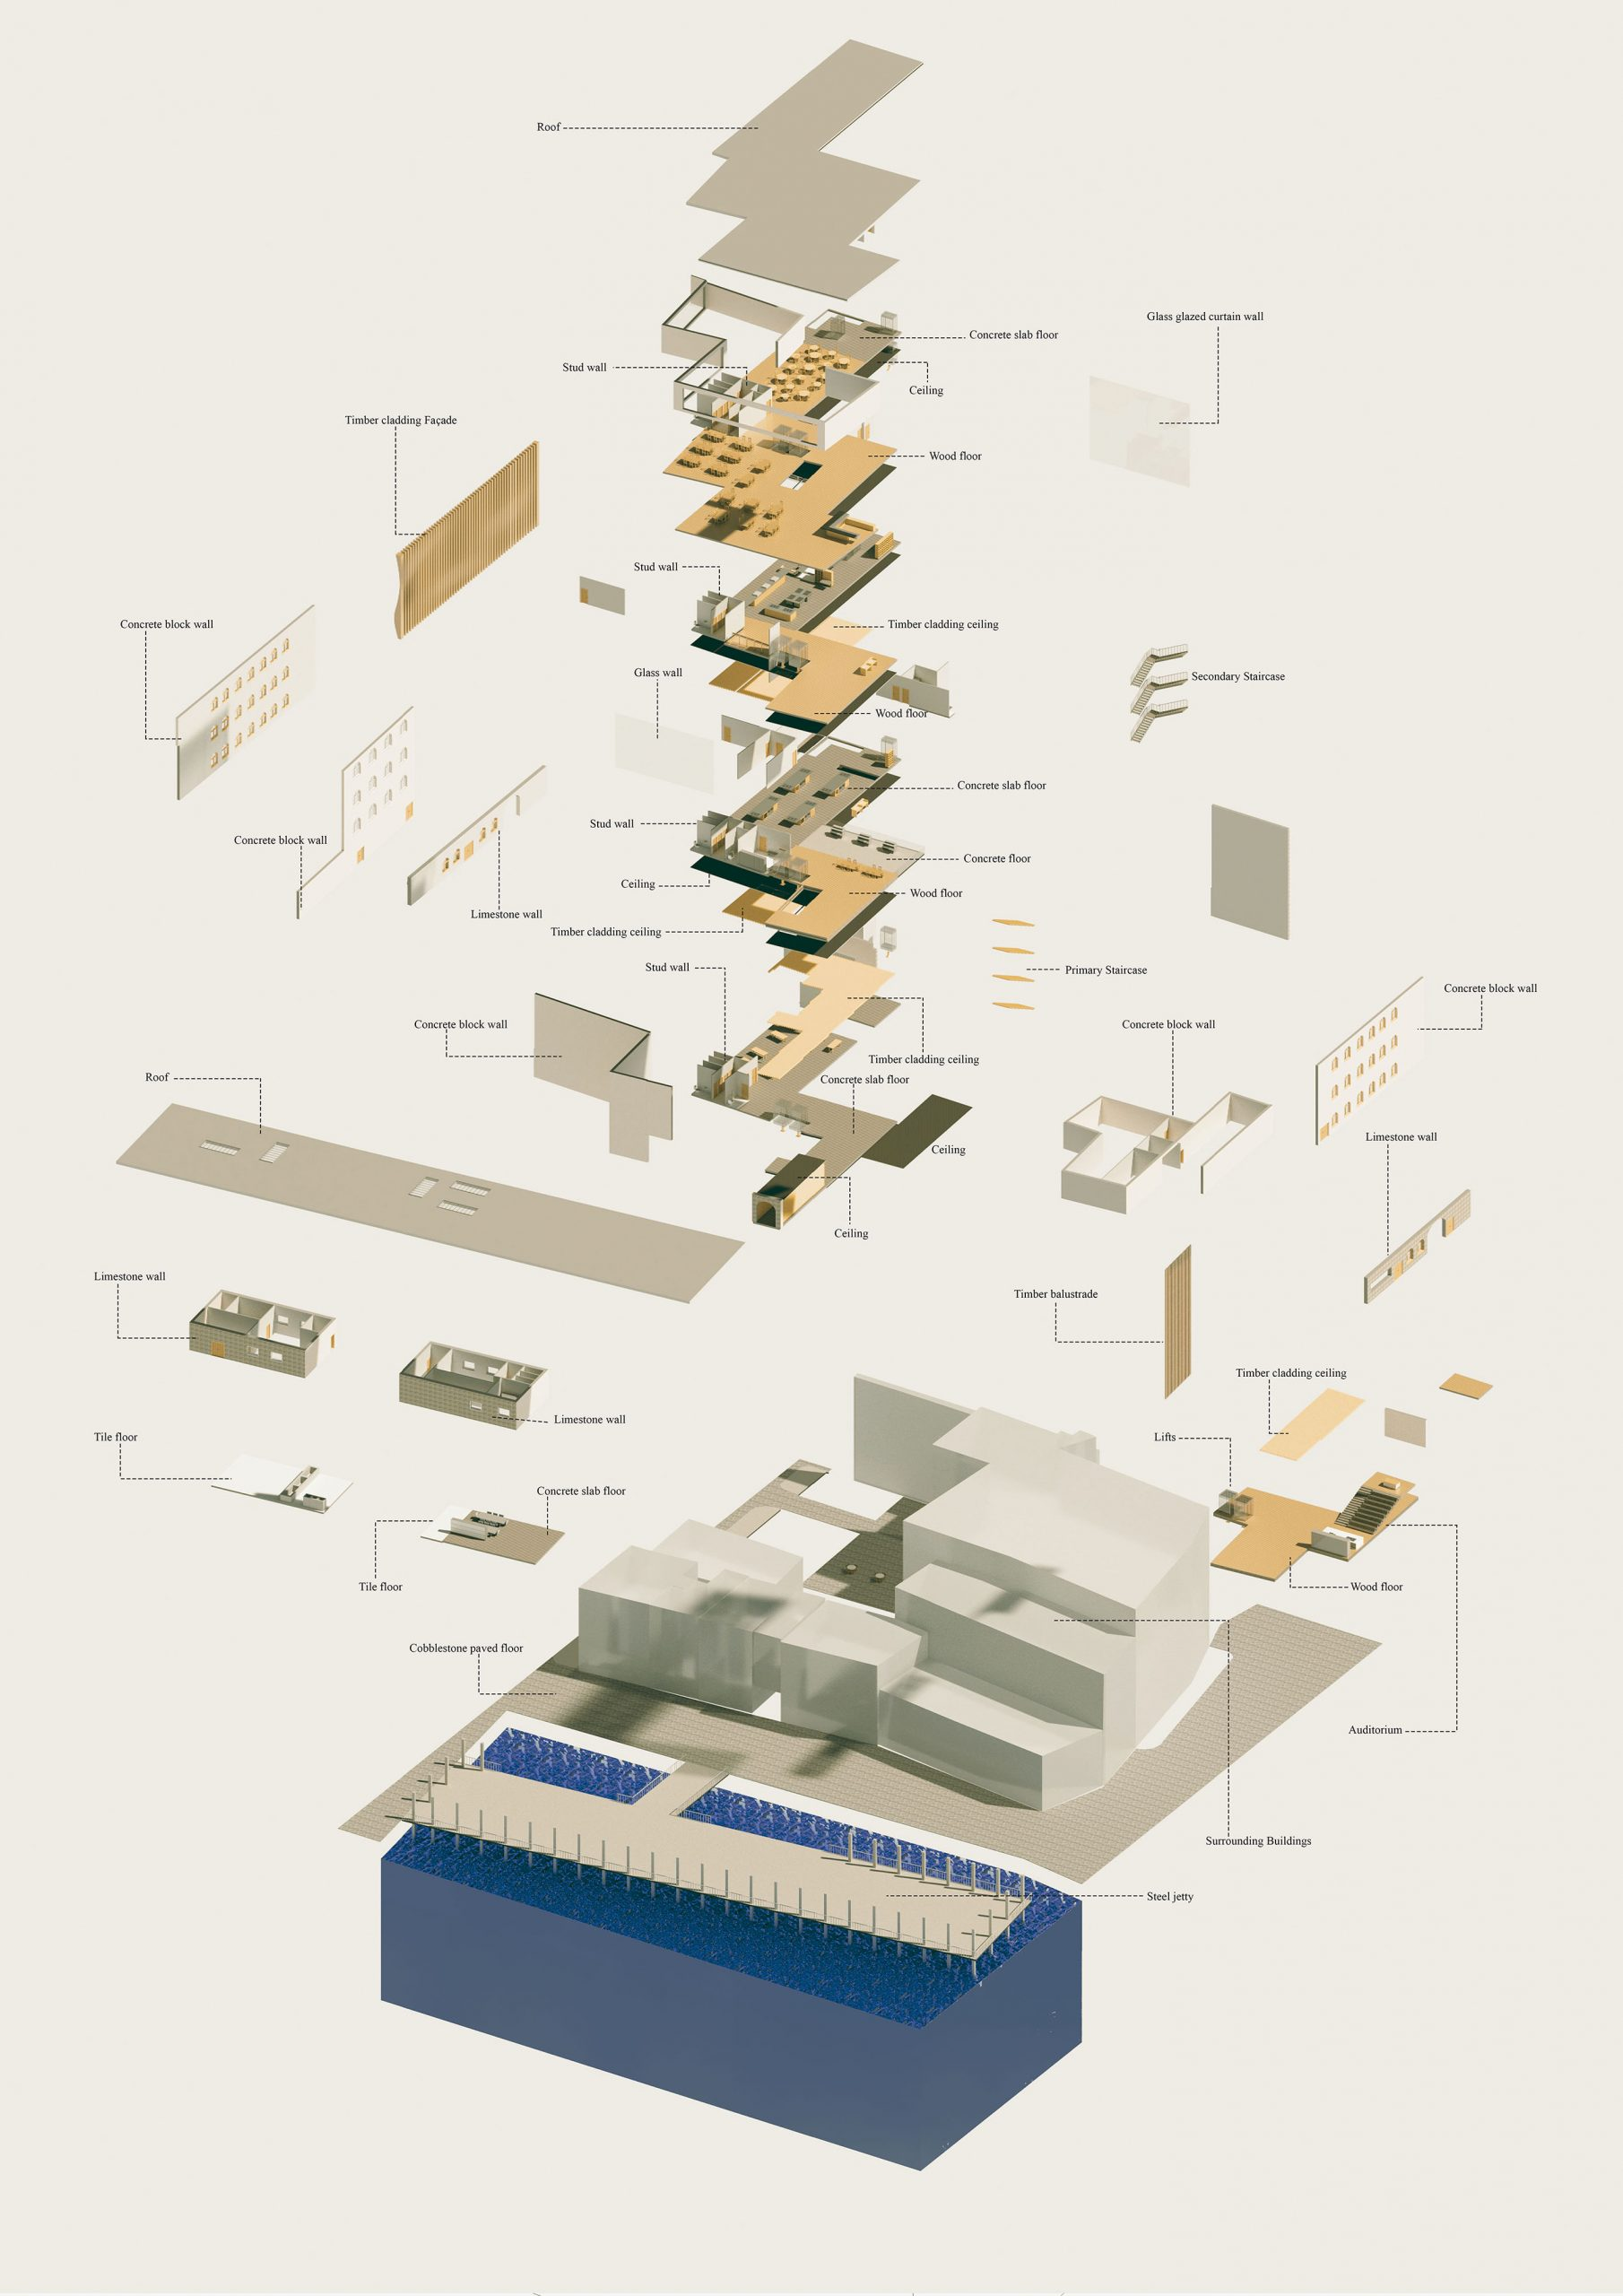 House of Pisces: Exploded Axonometric